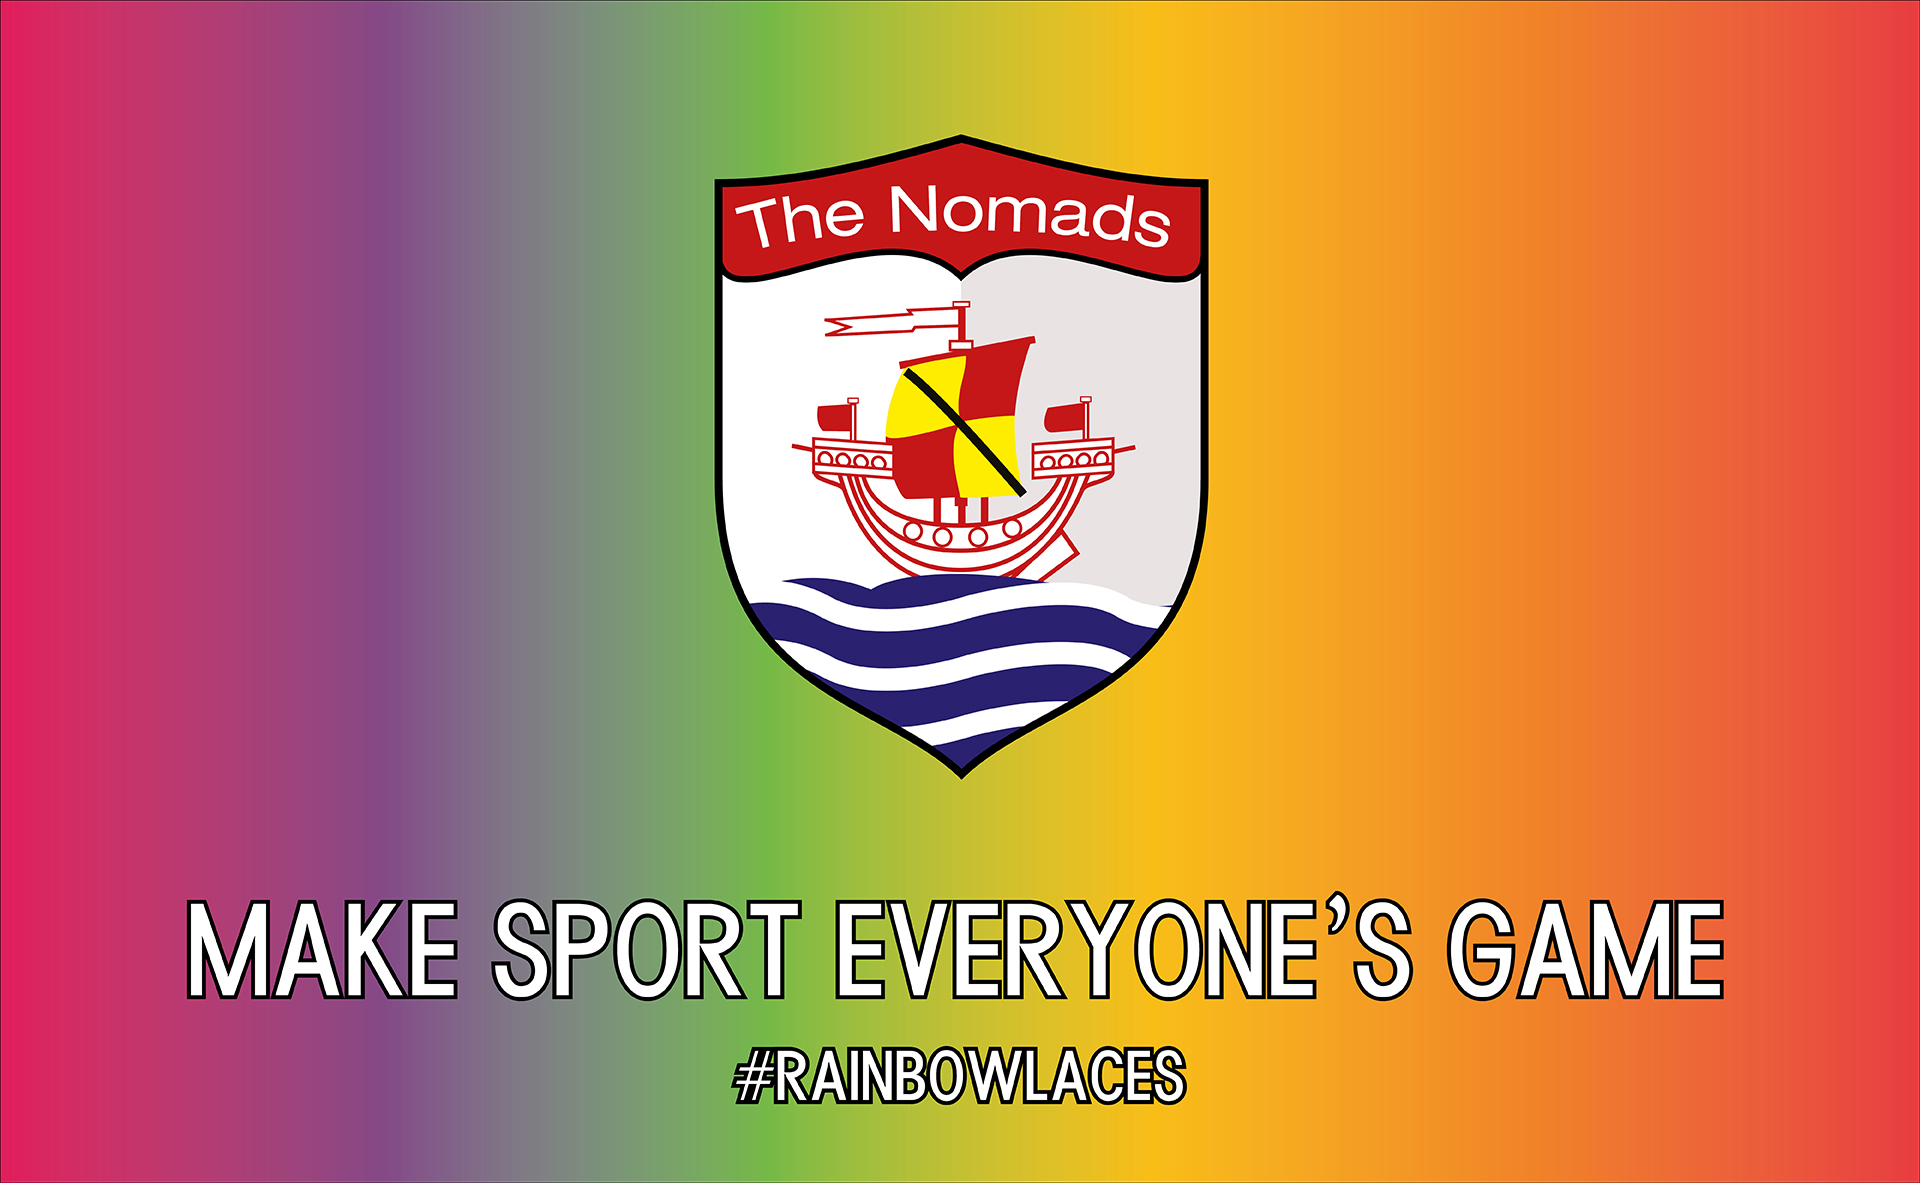 Connah's Quay Nomads are pleased to be supporting the Rainbow Laces campaign